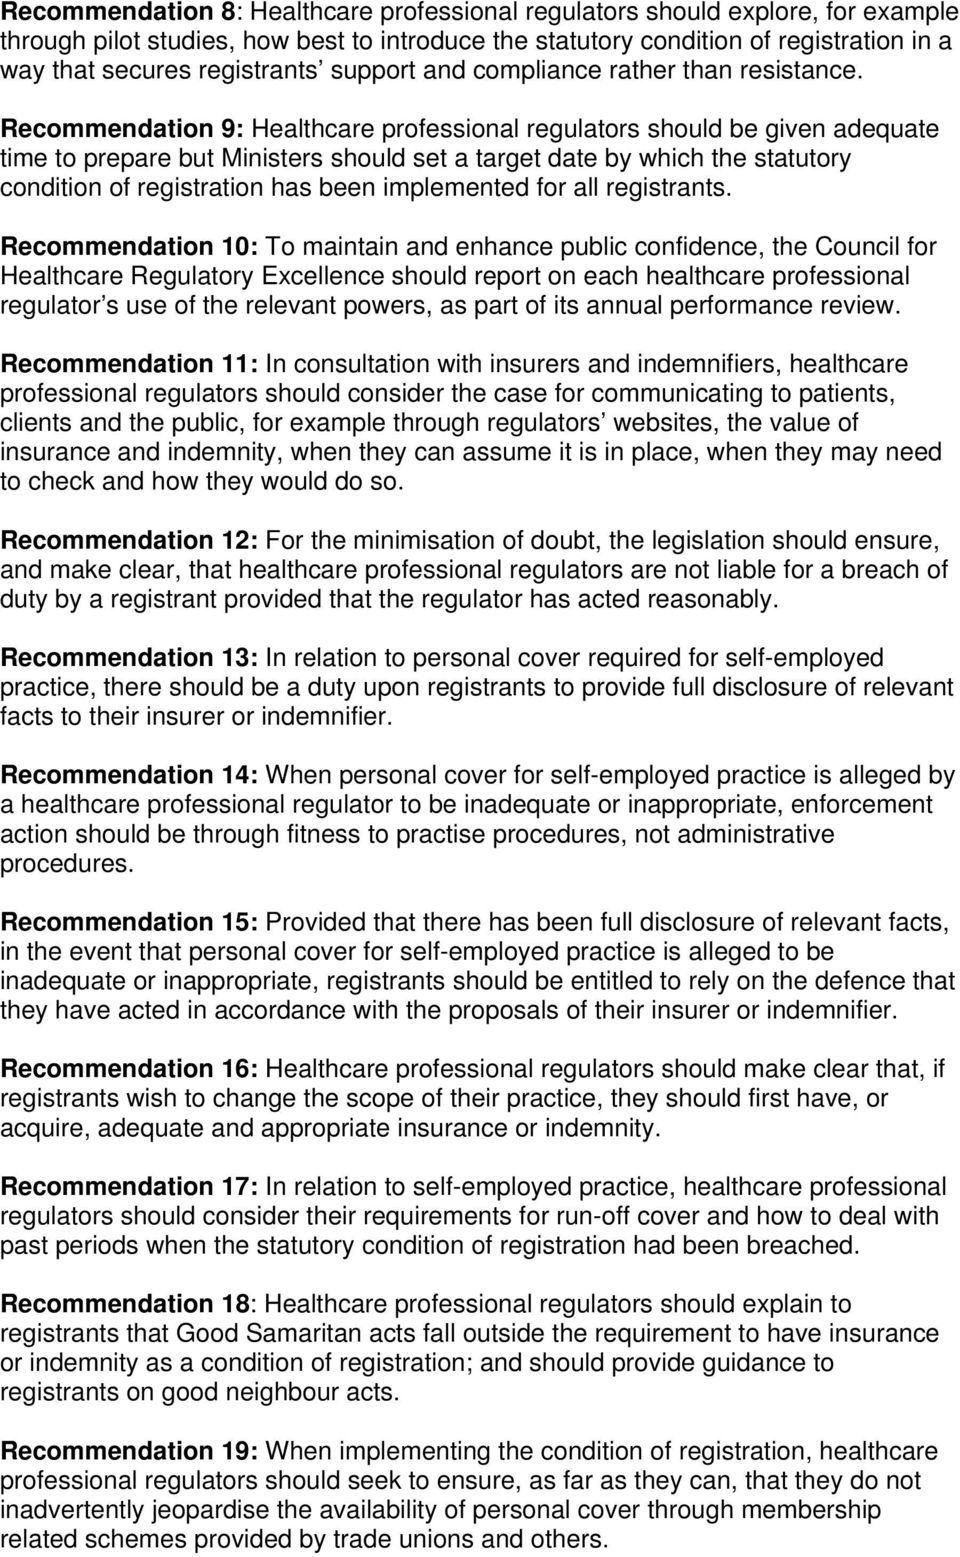 Recommendation 9: Healthcare professional regulators should be given adequate time to prepare but Ministers should set a target date by which the statutory condition of registration has been